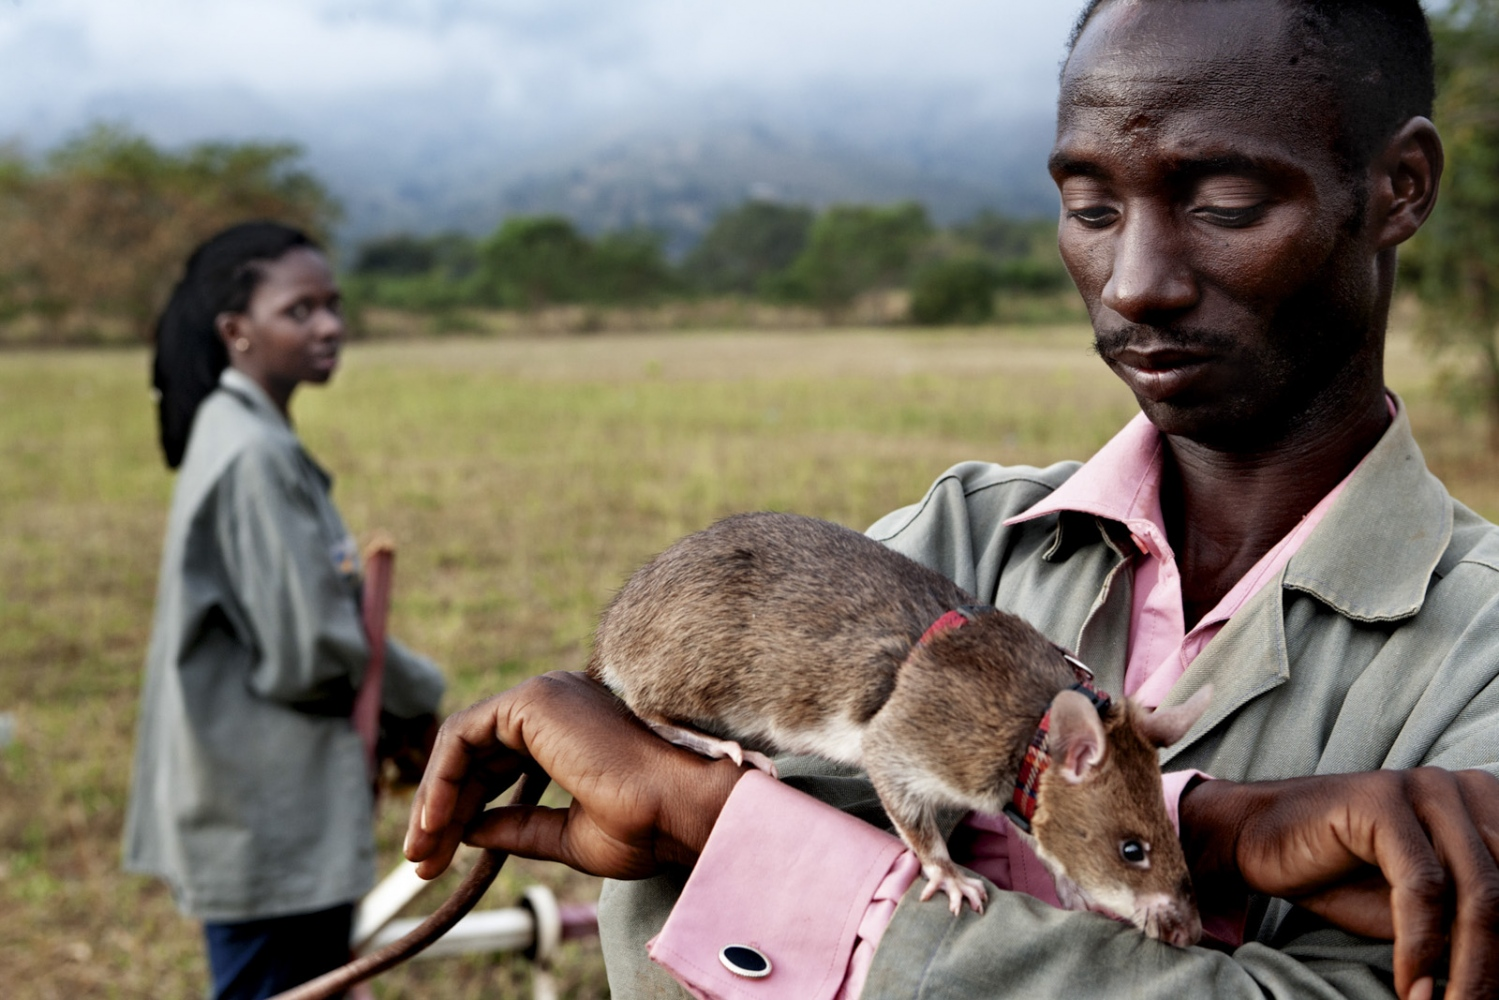 Art and Documentary Photography - Loading Hero_Rats.jpg